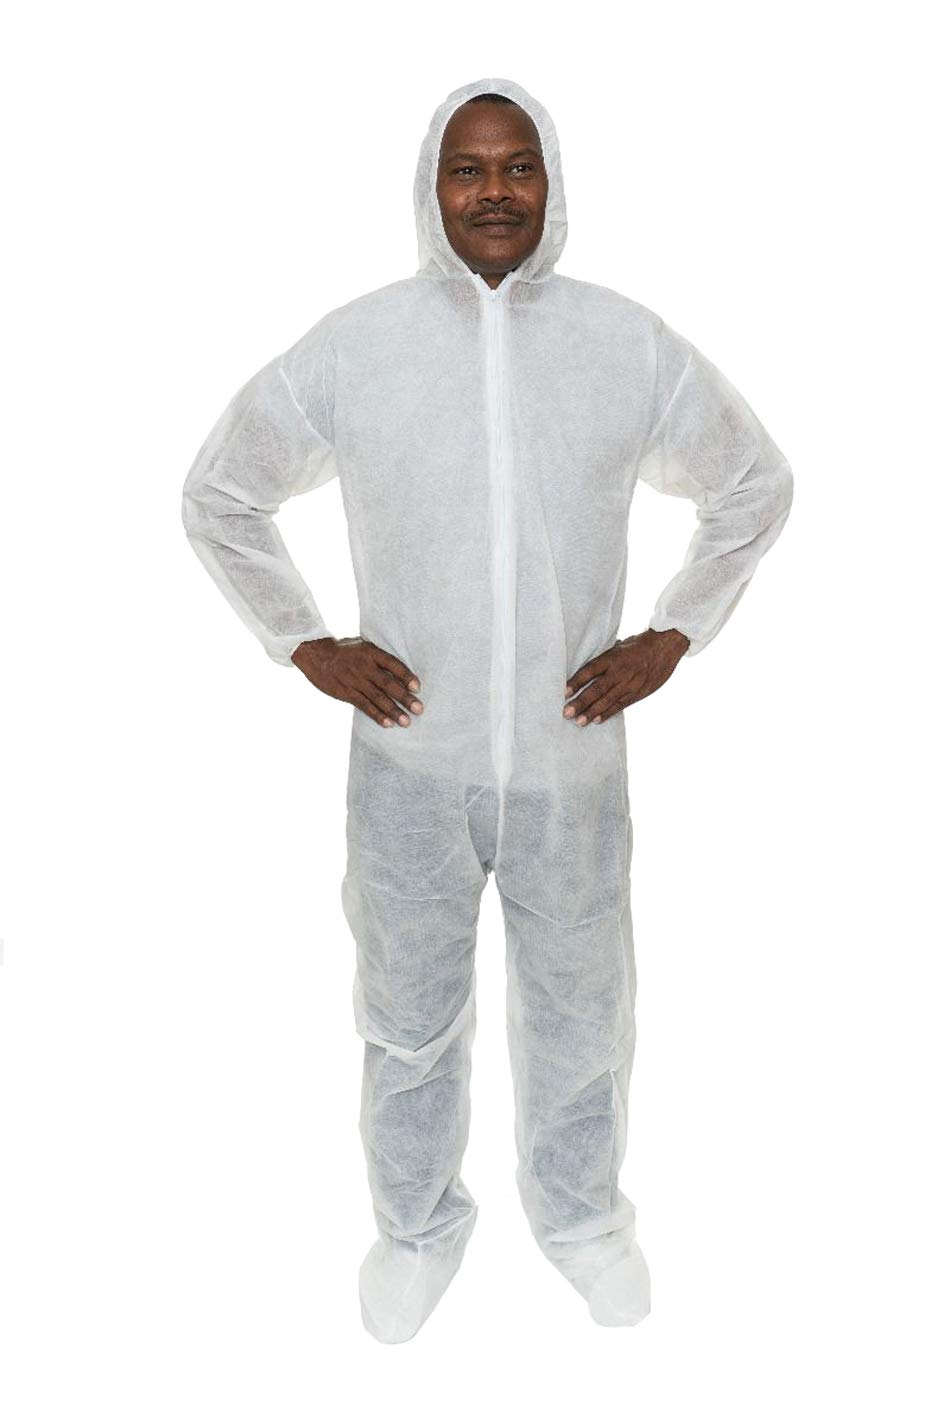 Heavy Duty Polypropylene Coverall (White) with Attached Hood & Boot and Elastic Wrist (2XL, Case of 25) by International Enviroguard